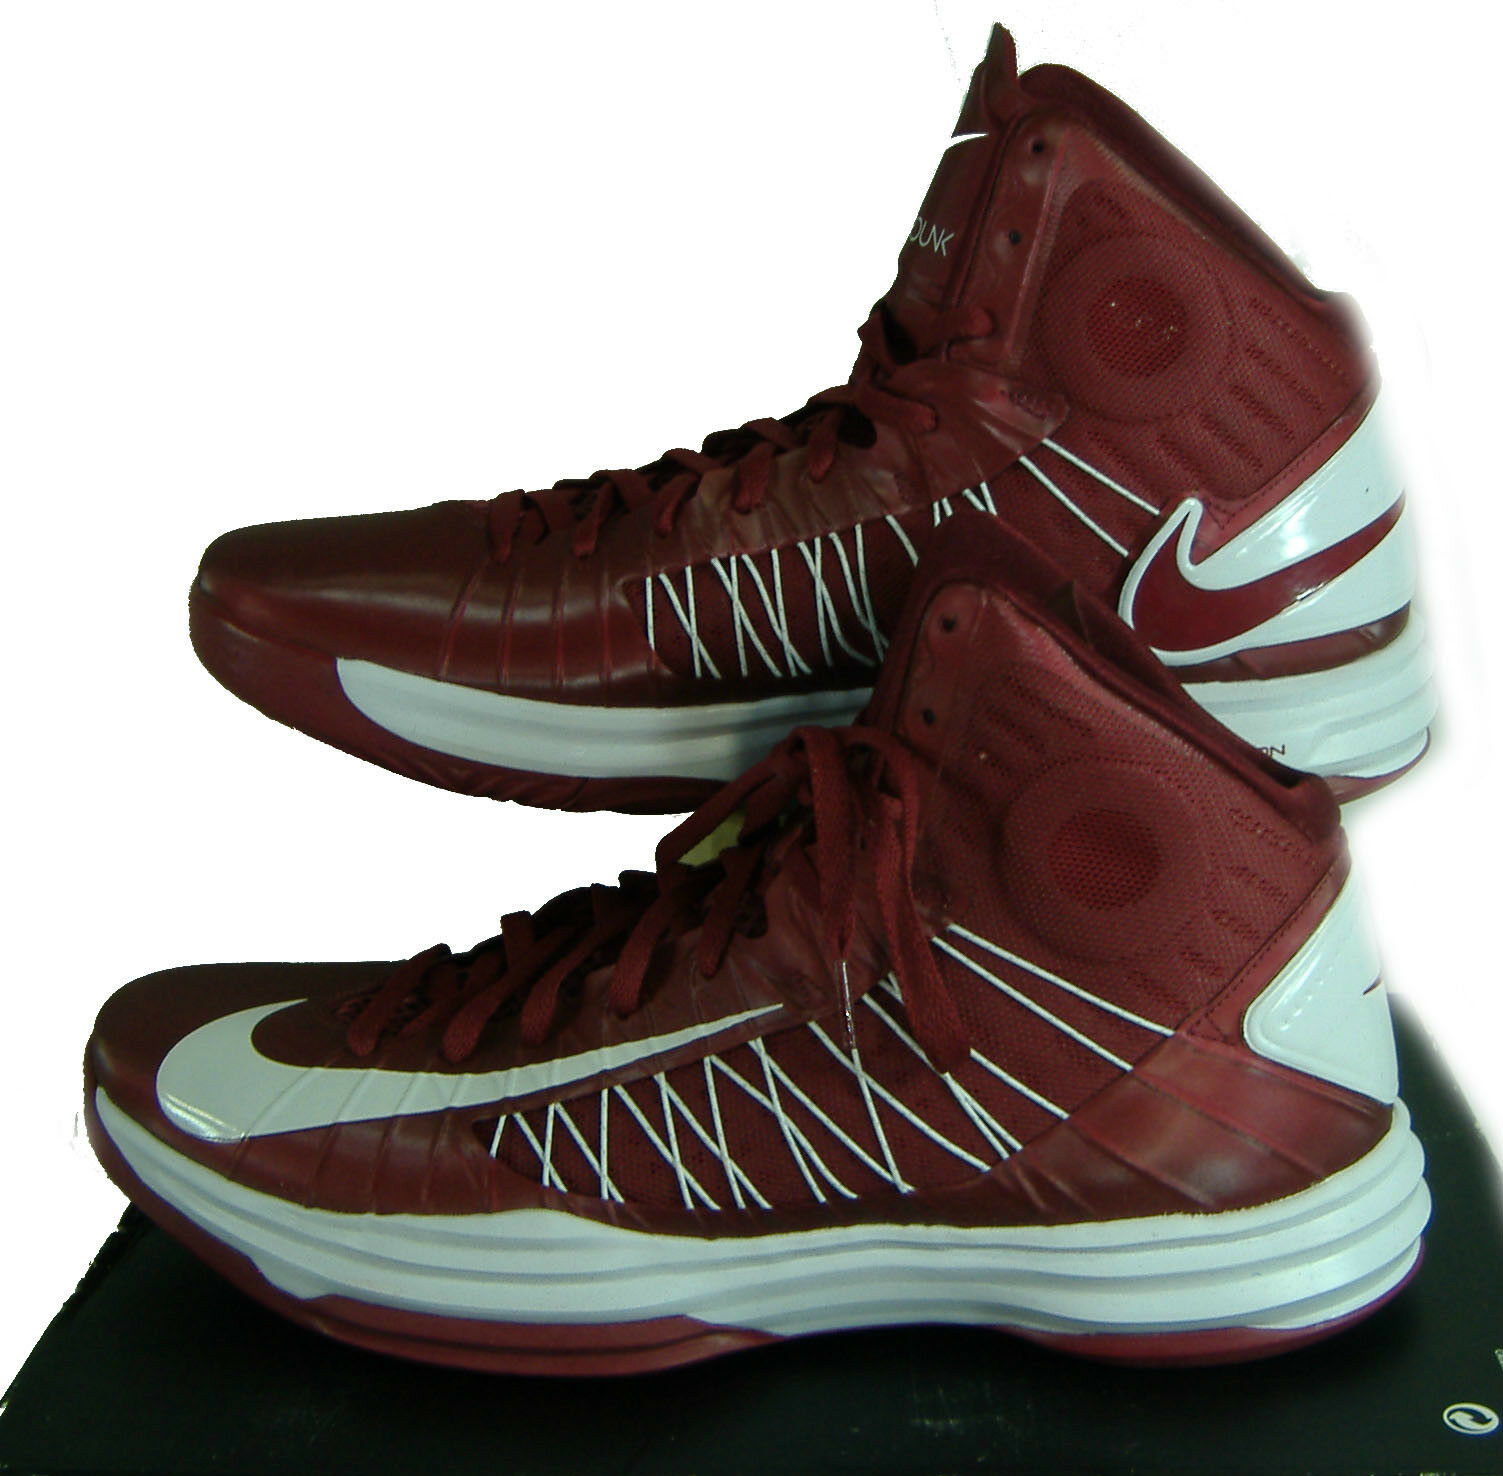 New Mens 16.5 NIKE Hyperdunk TB Maroon White High Hi Top Shoes $125 524882-600